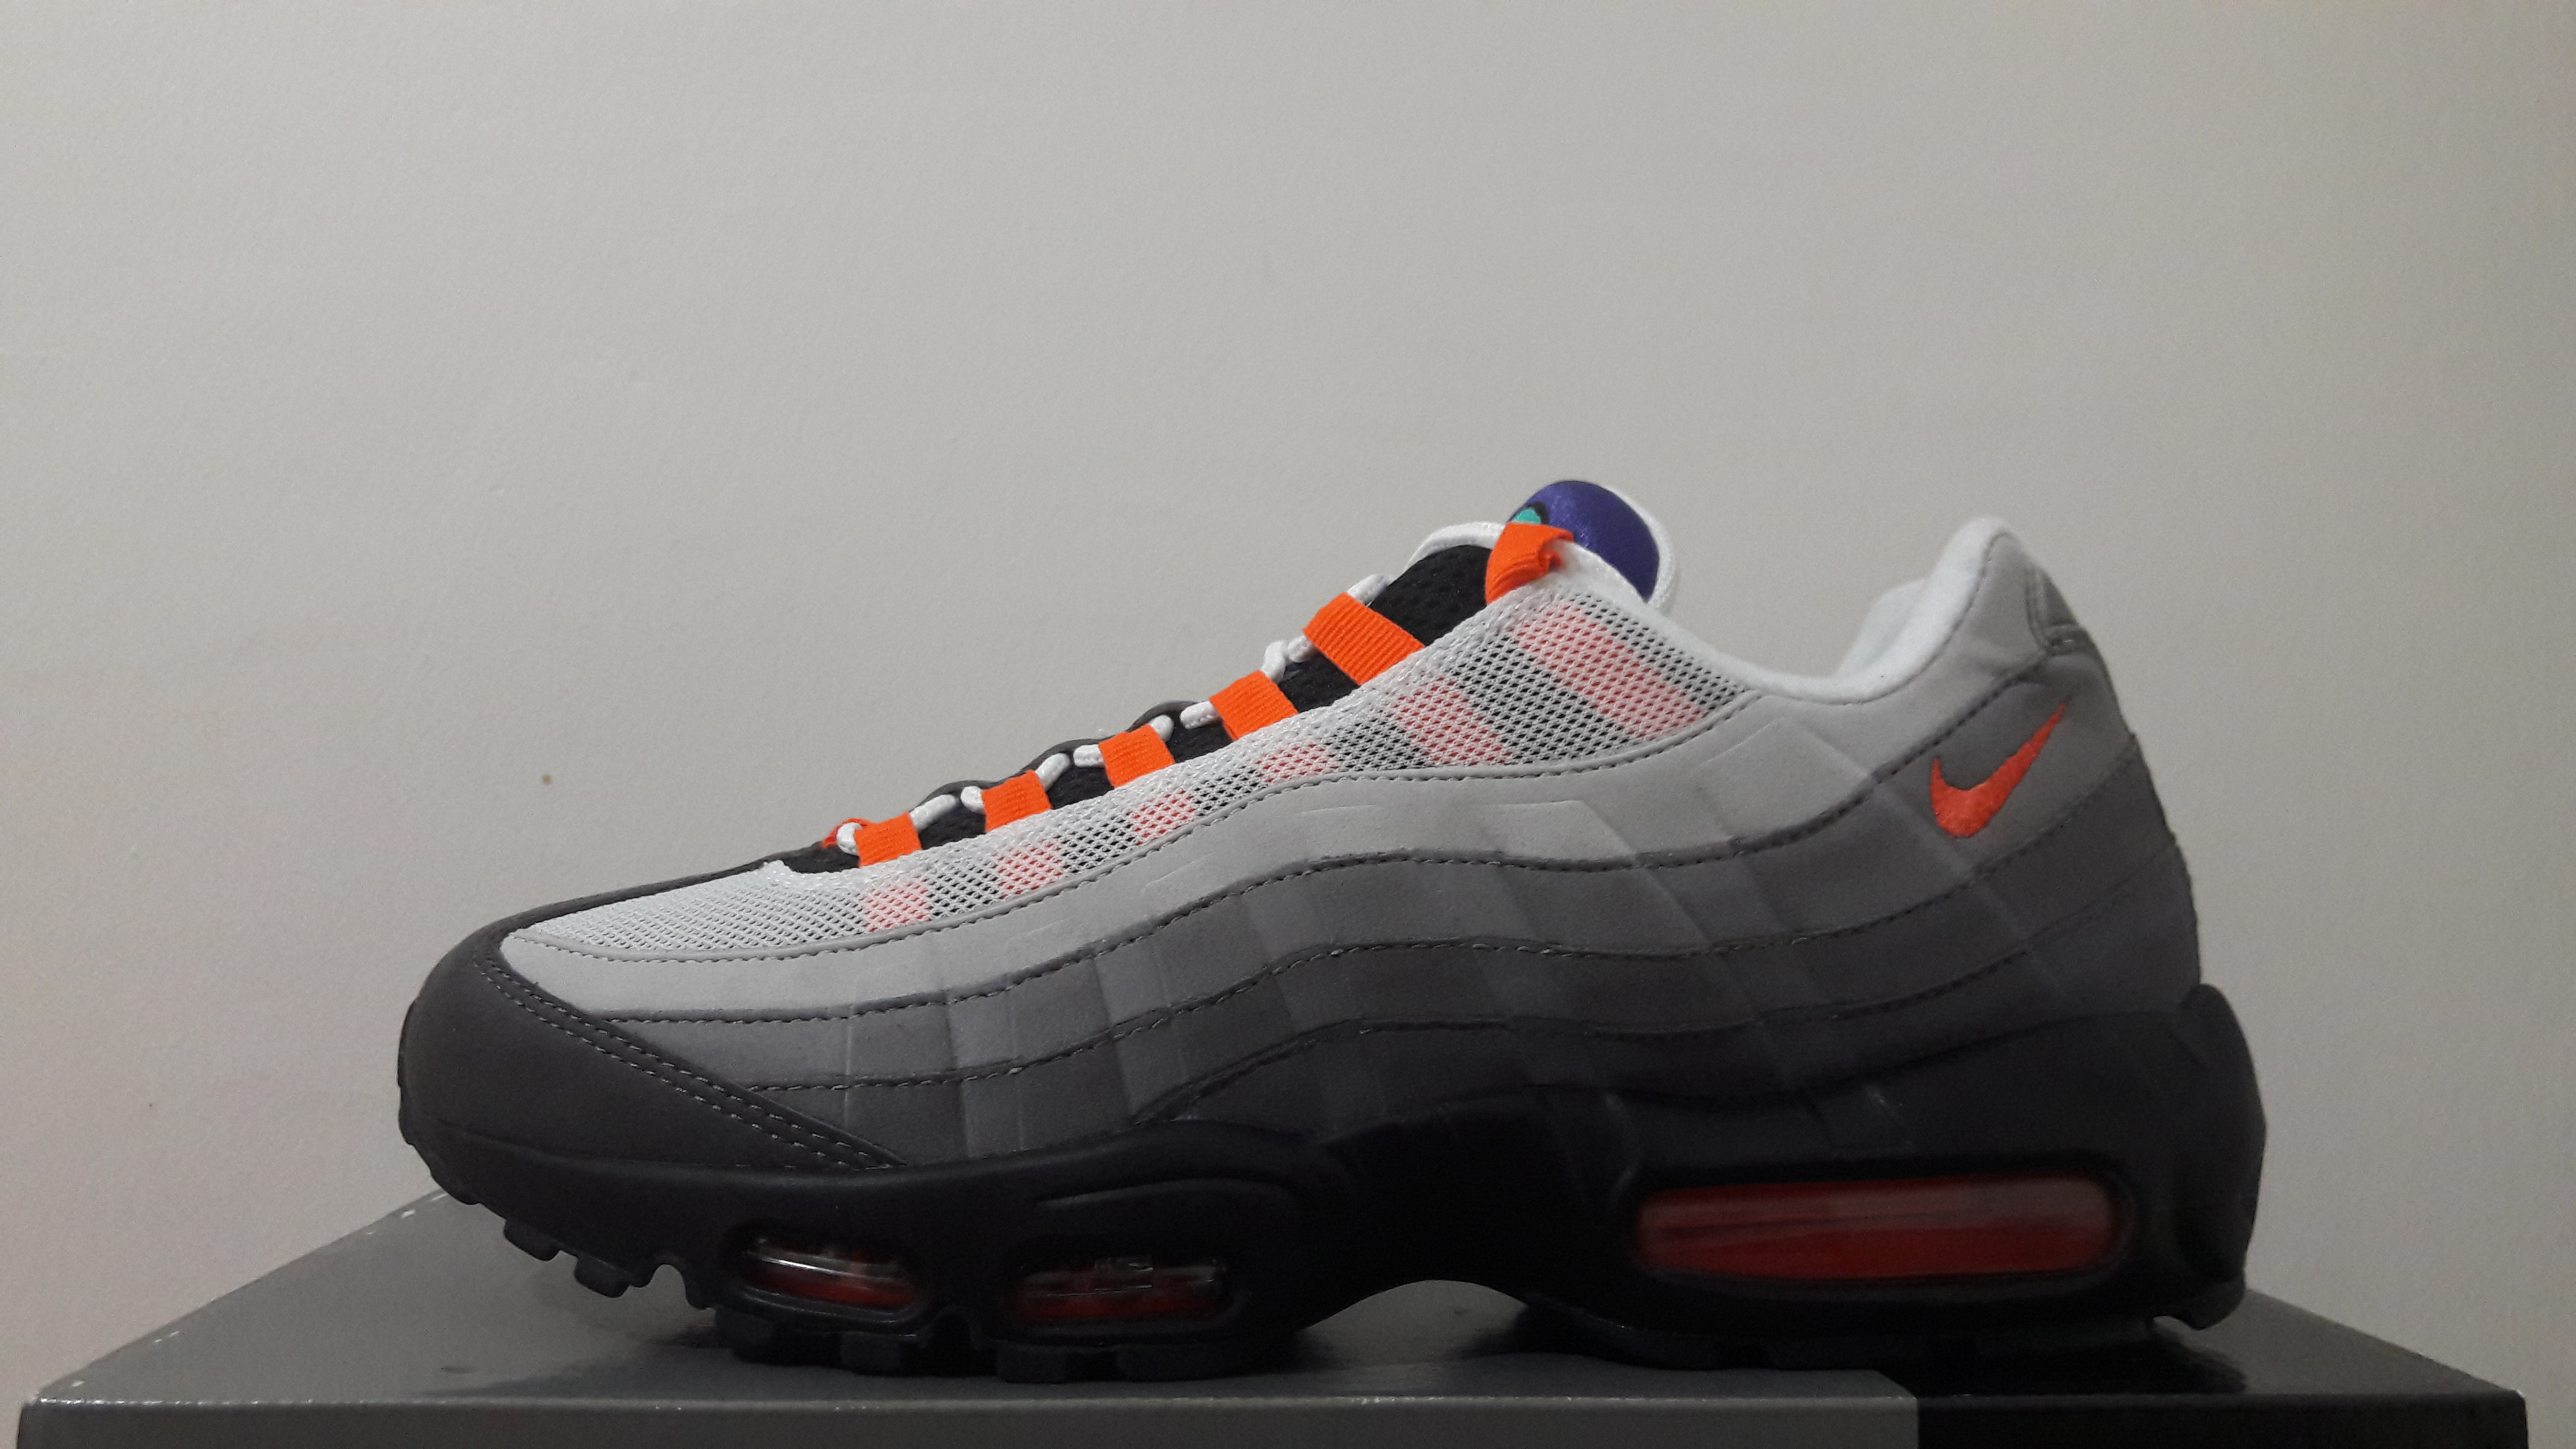 Mens Nike Air Max 95 OG QS Greedy Black Volt Safety Orange Trainers Running Shoes 810374 078 810374 078